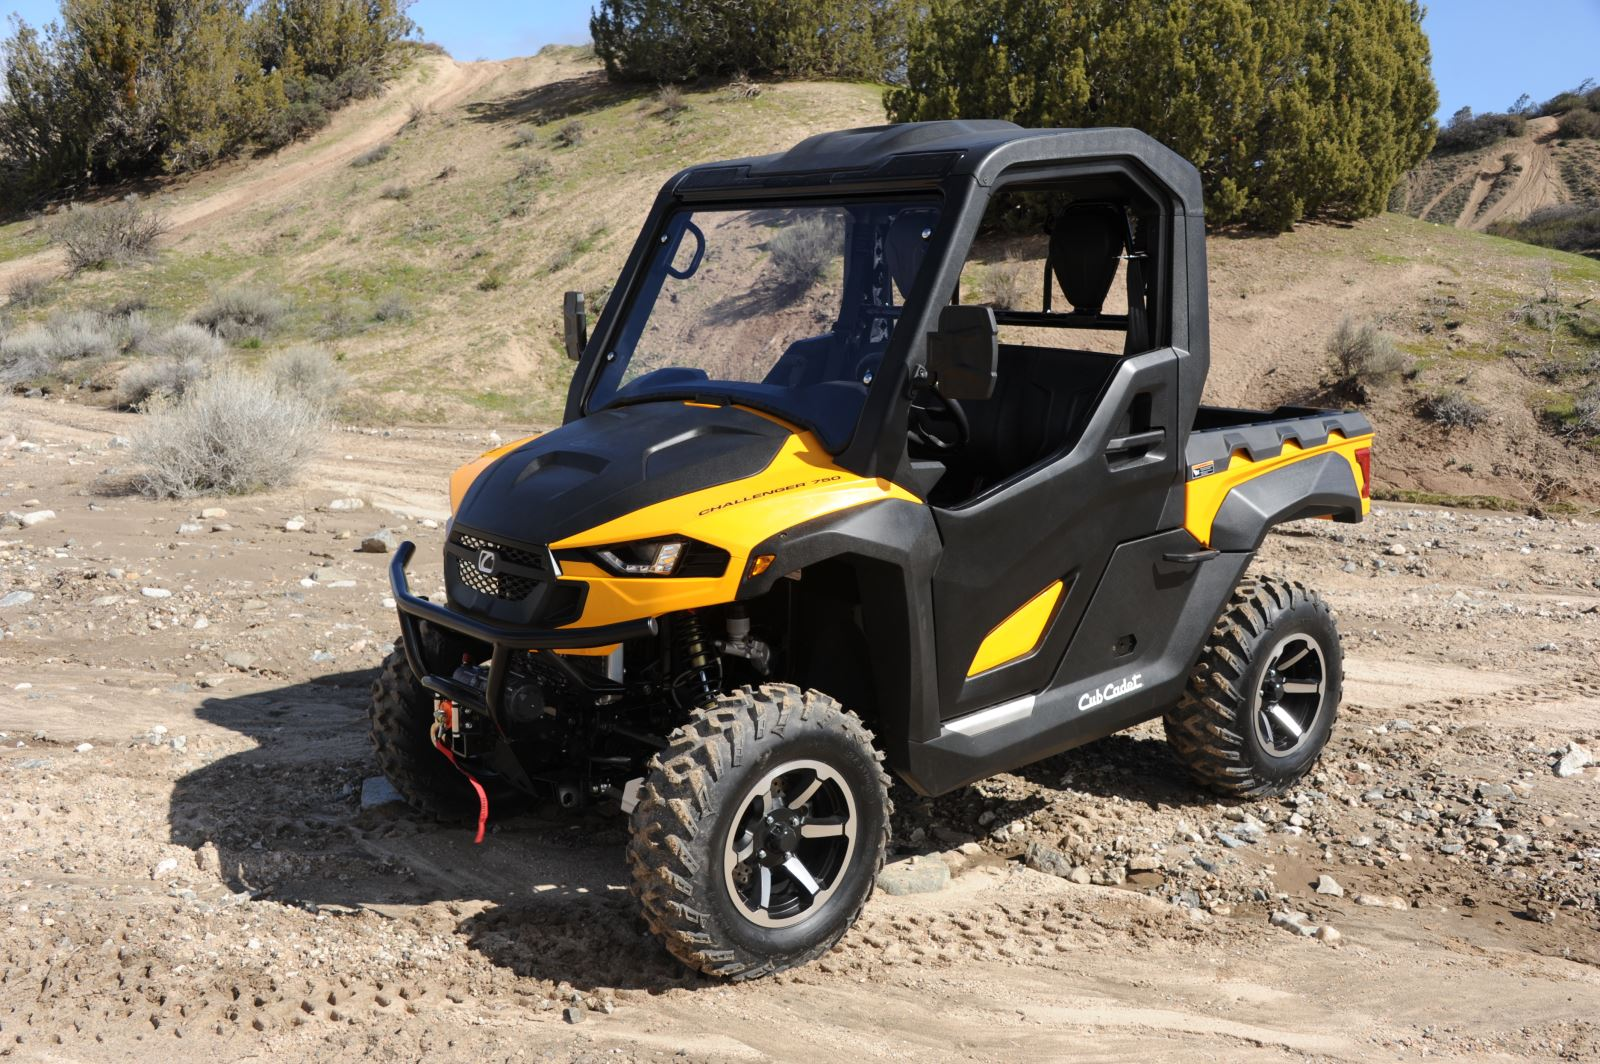 Cub cadet coupons 2018 free coupons without registering zero turn lawn mowers snow blowers parts and accessorieswe offer this and much more so check out our website for morespecifications pictures fandeluxe Choice Image